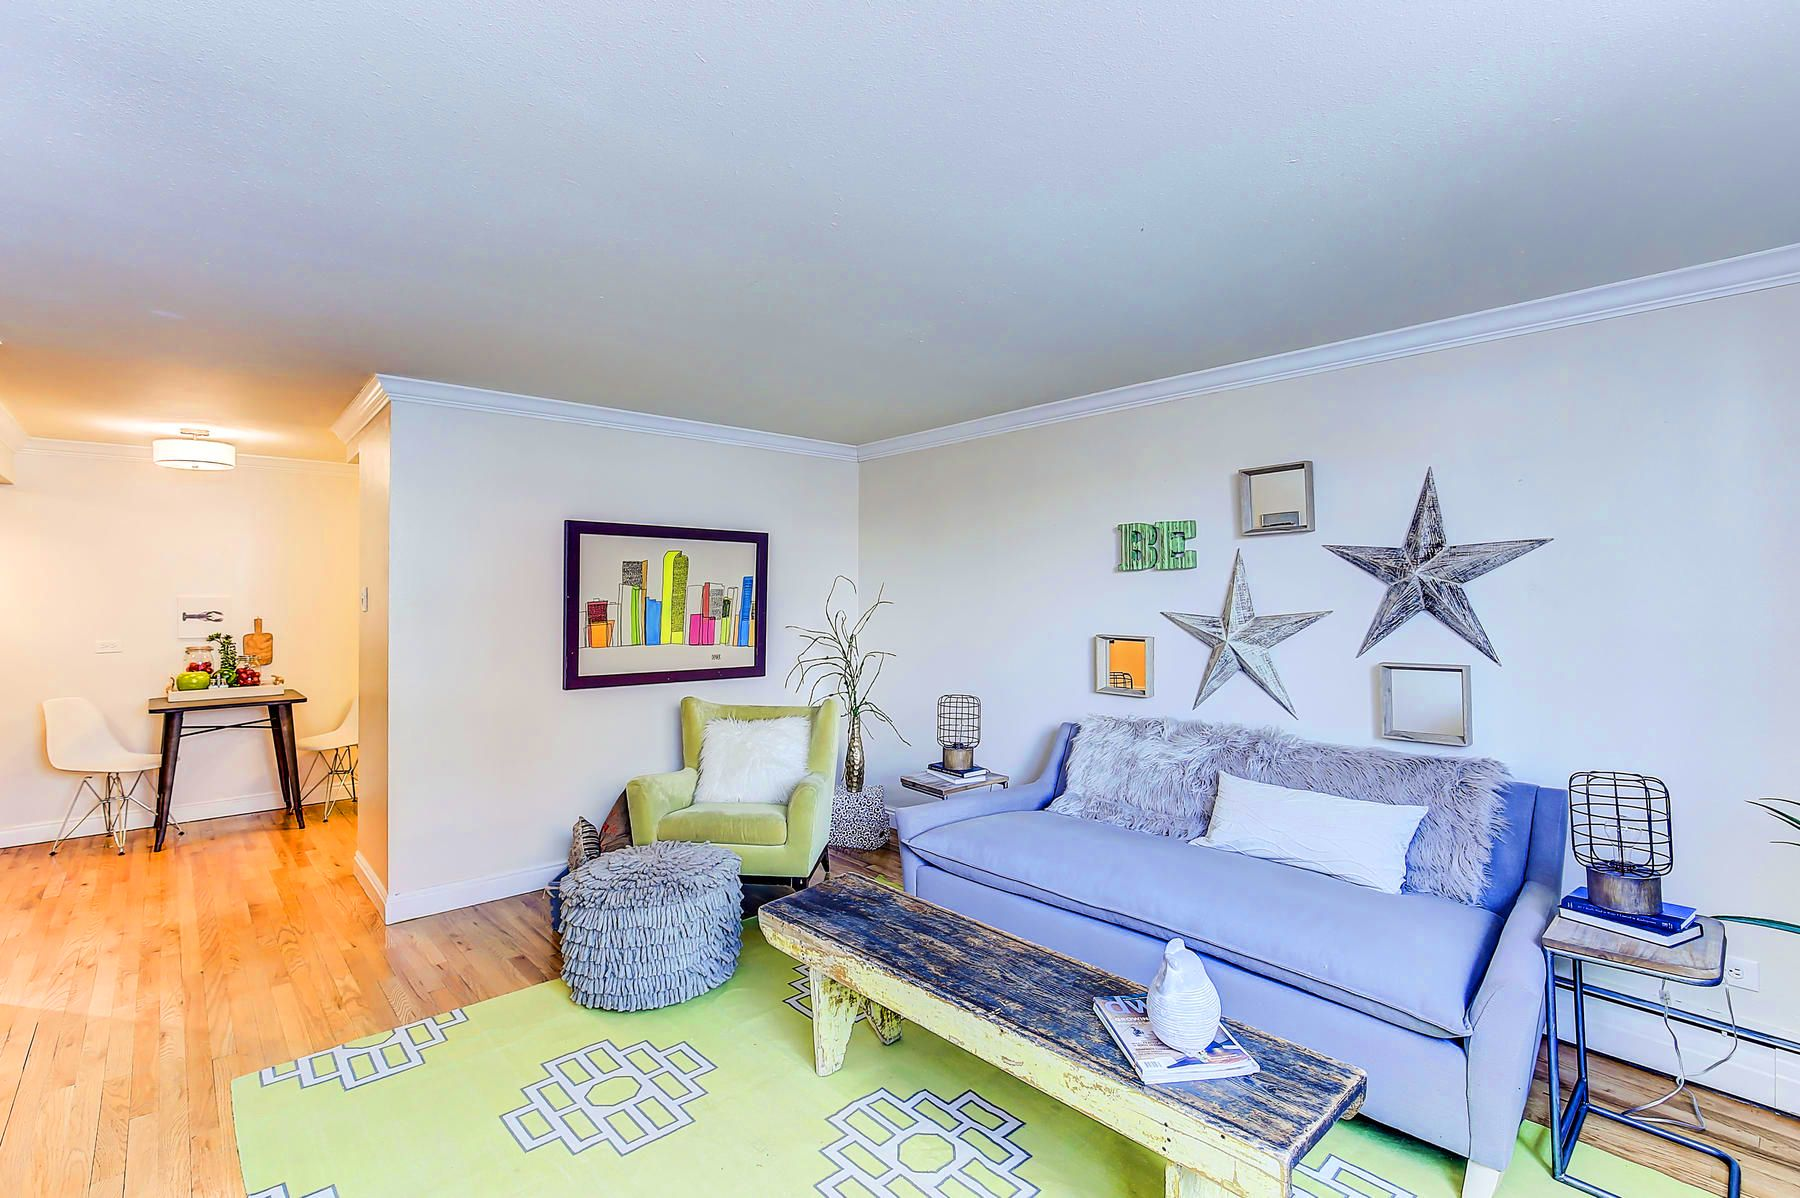 Capitol Hill Denver Condo   Just Listed   1390 Emerson St #101   $195,000.